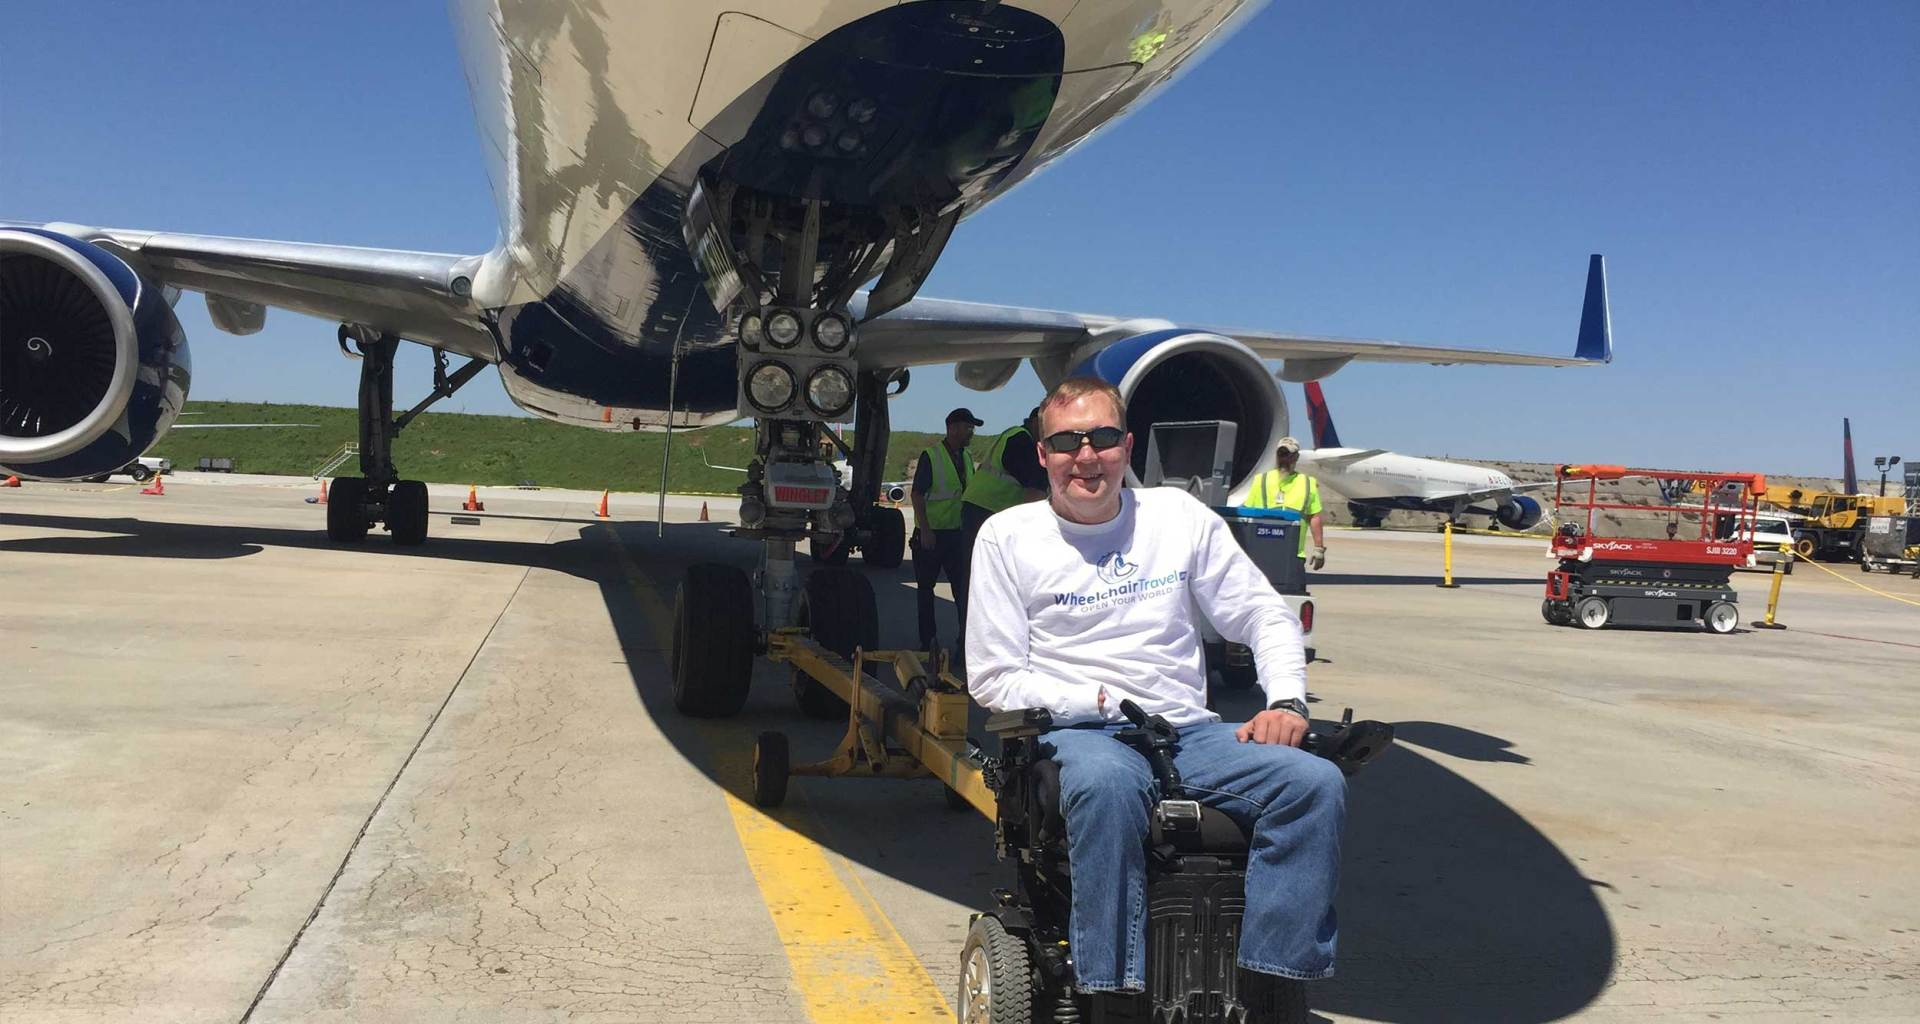 John seated in his wheelchair on the tarmac in front of a Boeing 757 airplane.